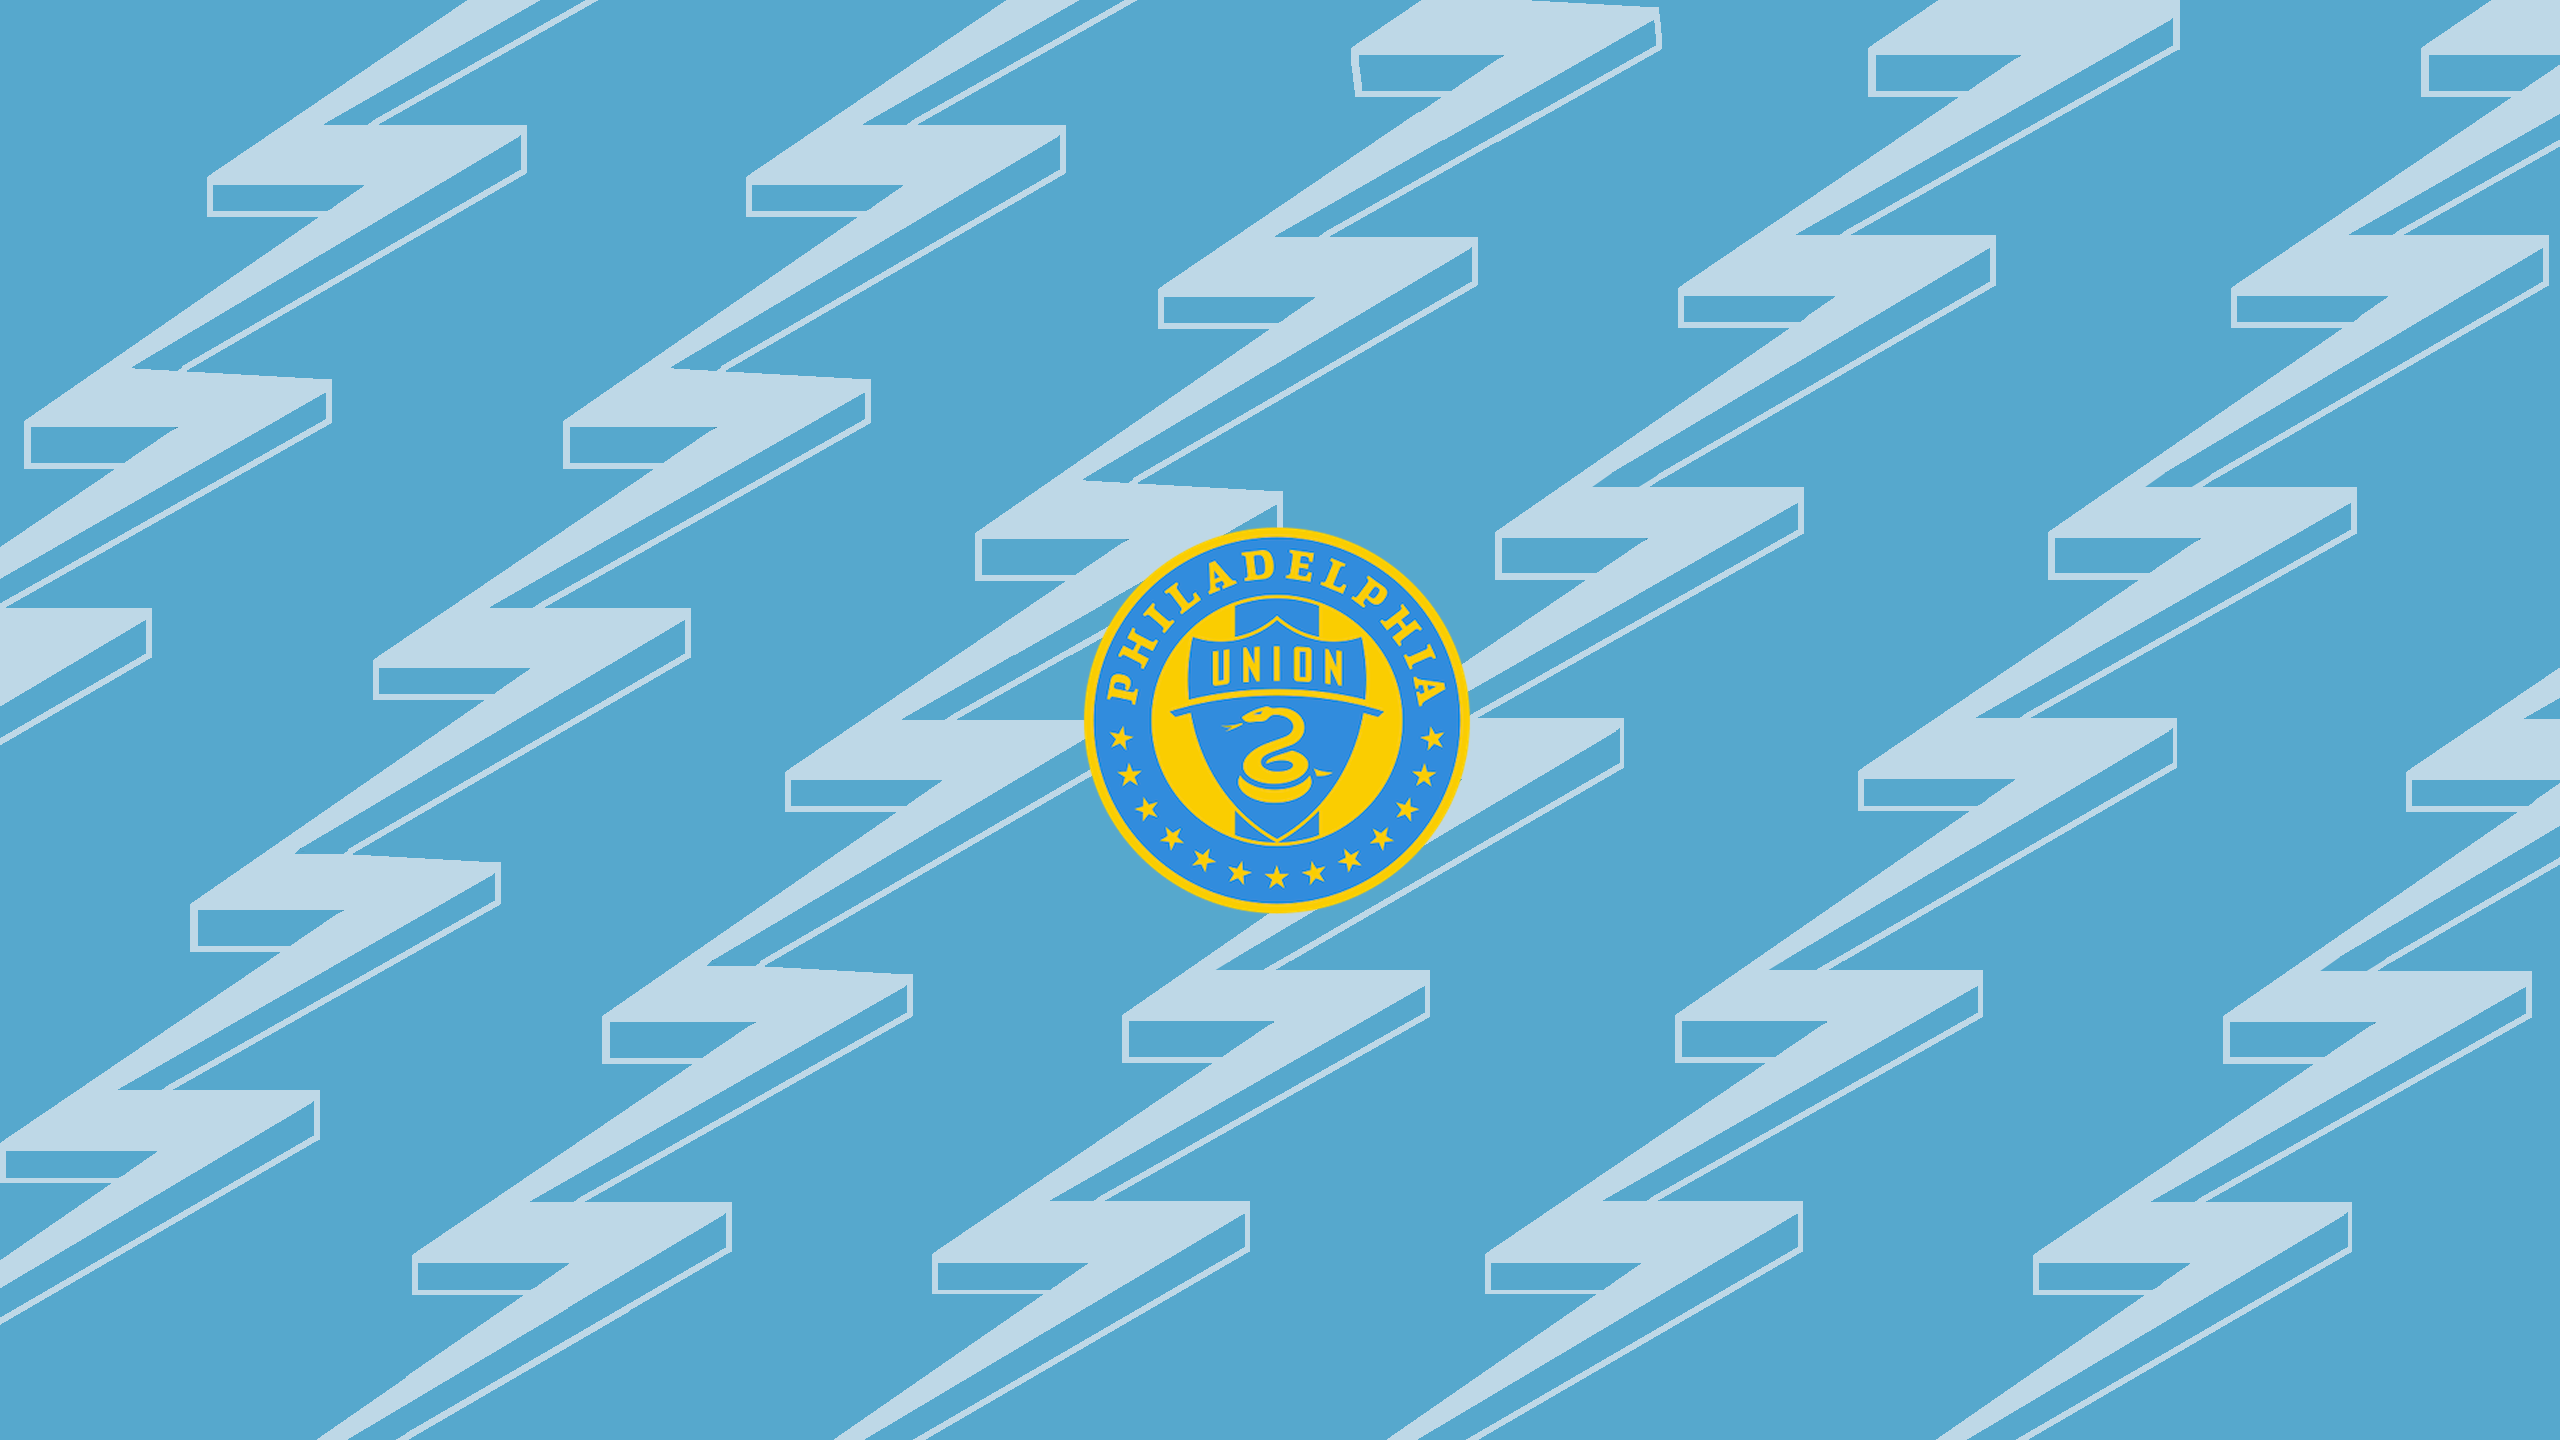 Philadelphia Union (Away)